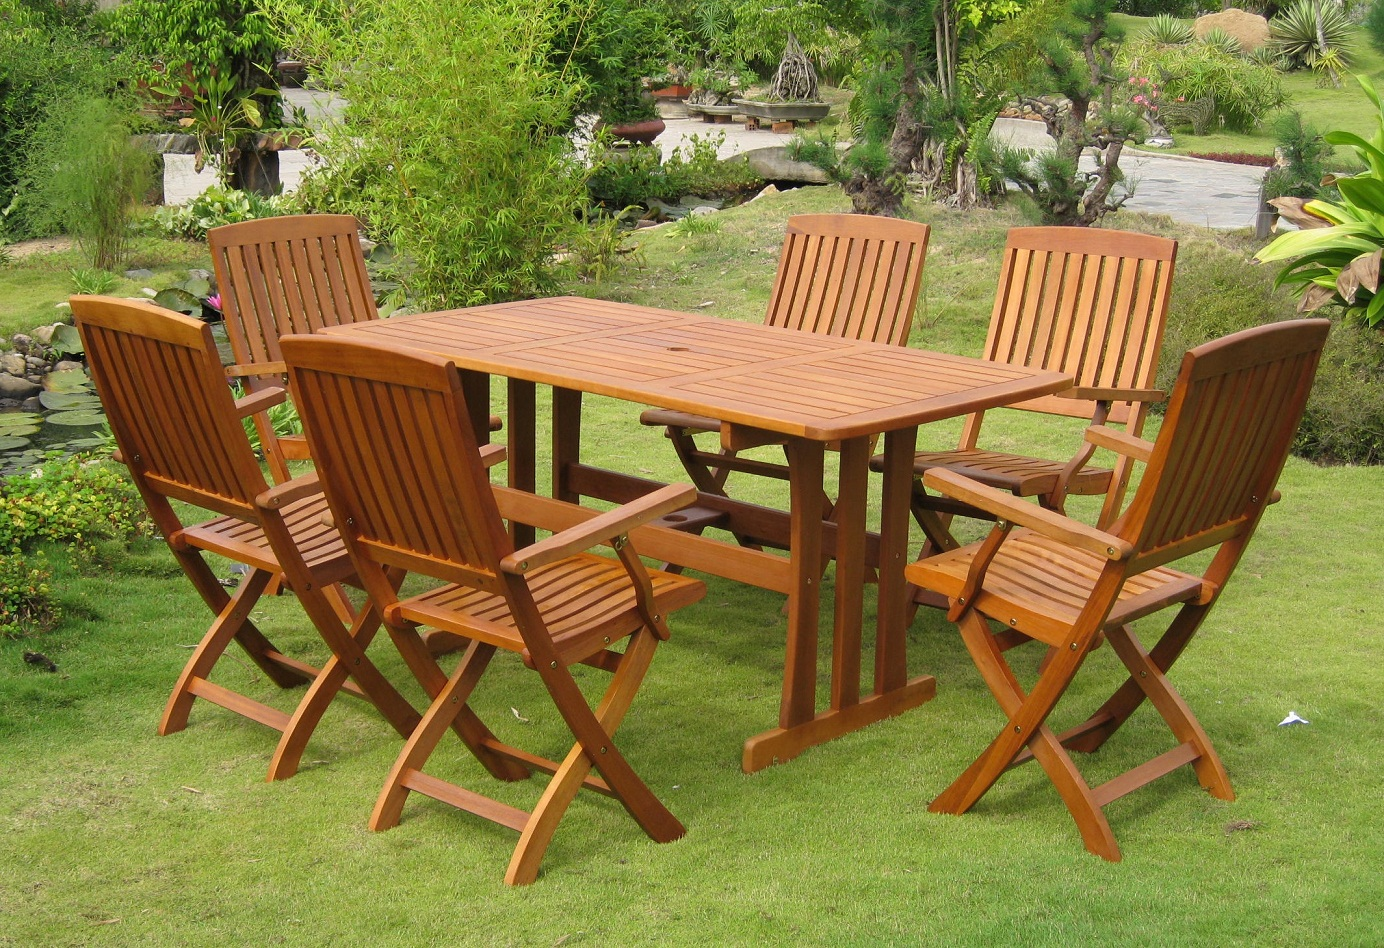 Ideas of Wooden Patio Furniture wooden outdoor furniture